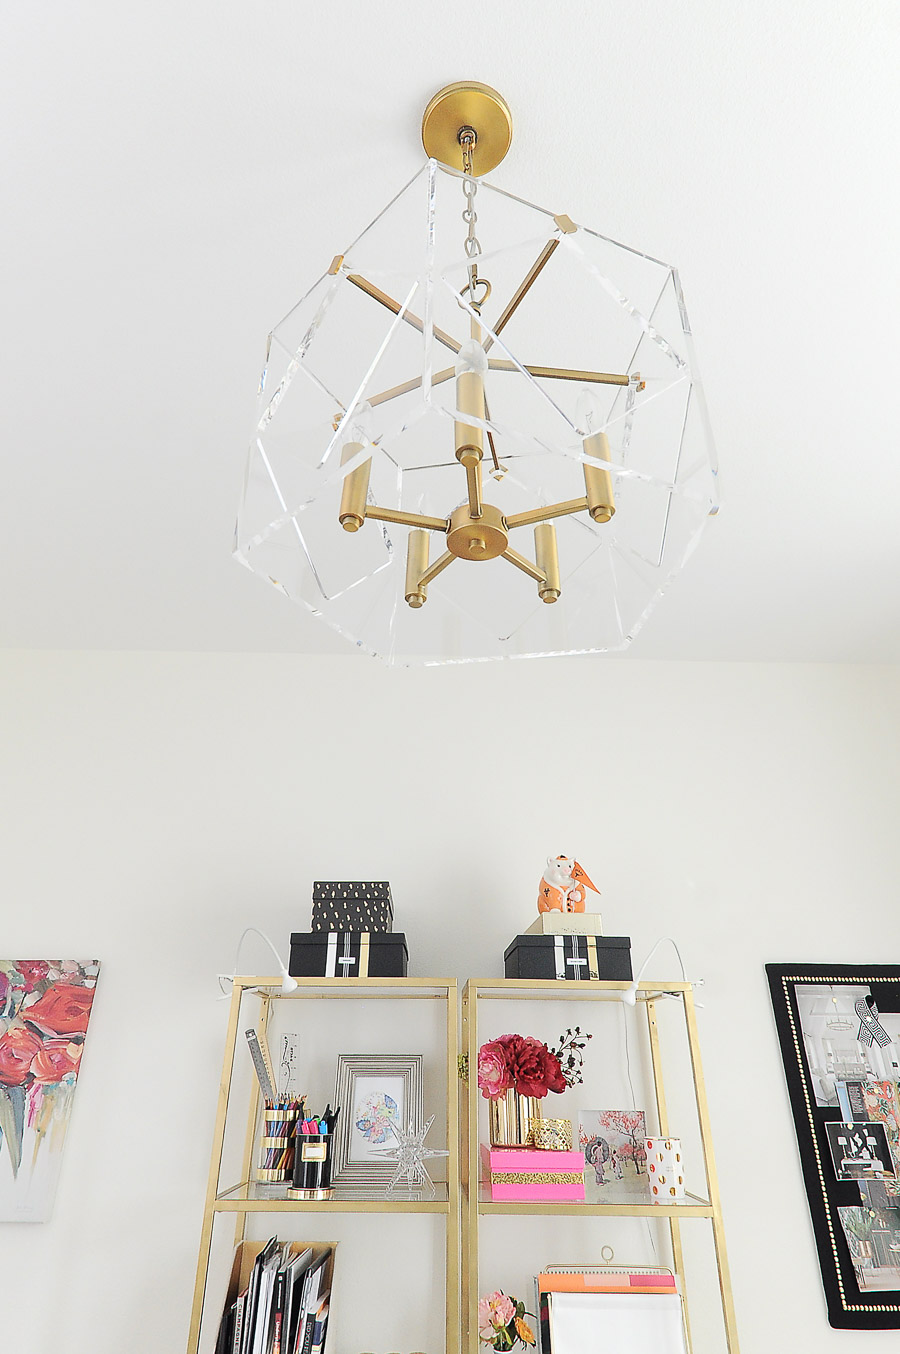 A lucite and brass chandelier adds glamour to a bright white and gold home office space.